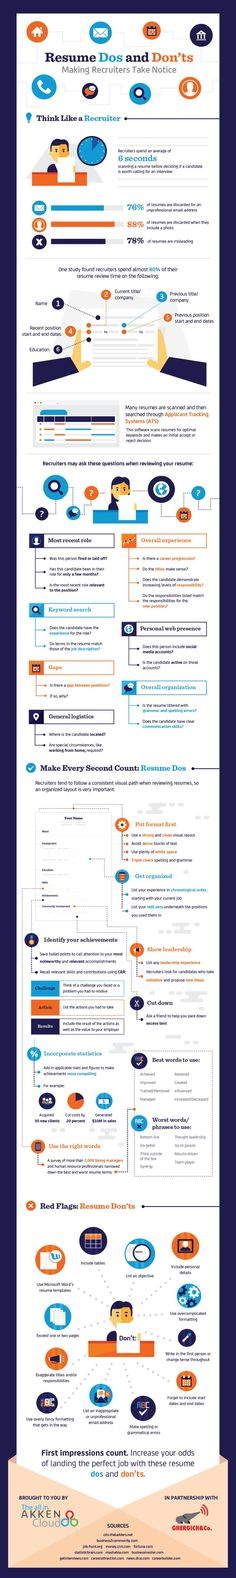 230 best Resume Tips for All Job Seekers images on Pinterest in 2018 - Expert Tips On Resume Principles